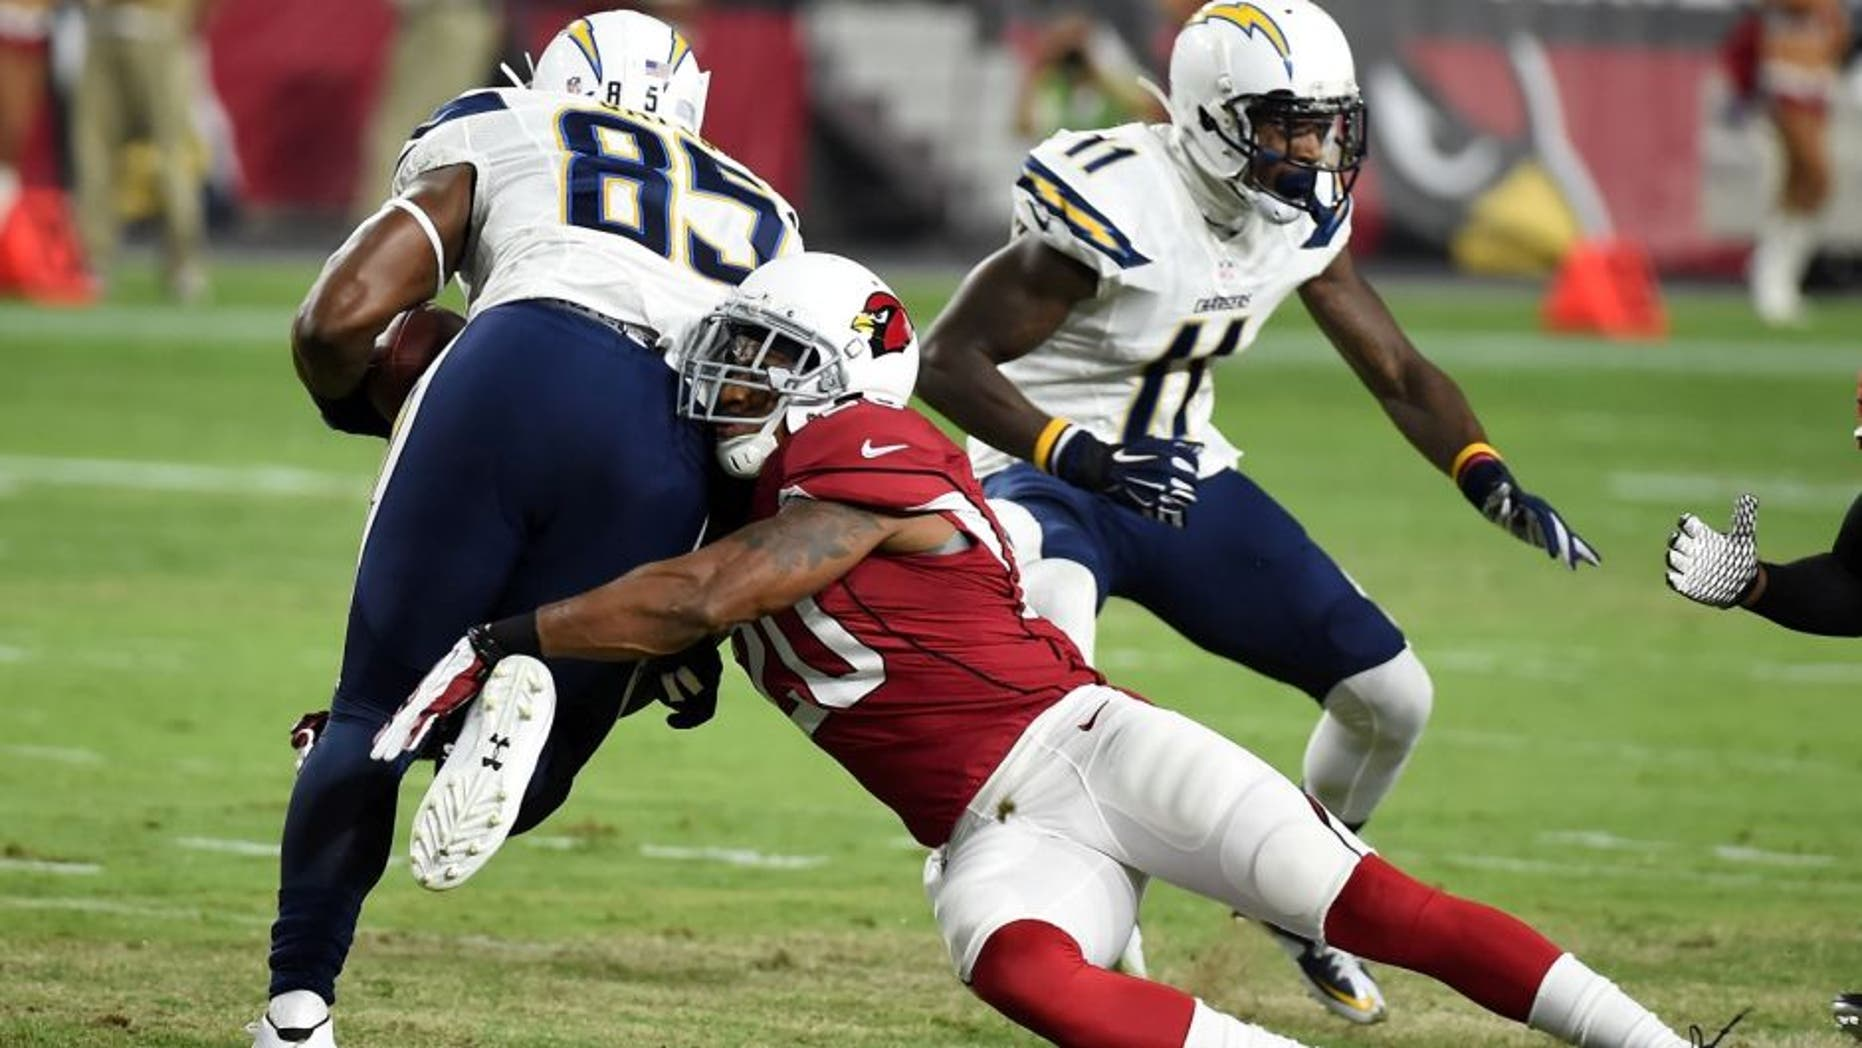 against the San Diego Chargers at University of Phoenix Stadium on August 22, 2015 in Glendale, Arizona.